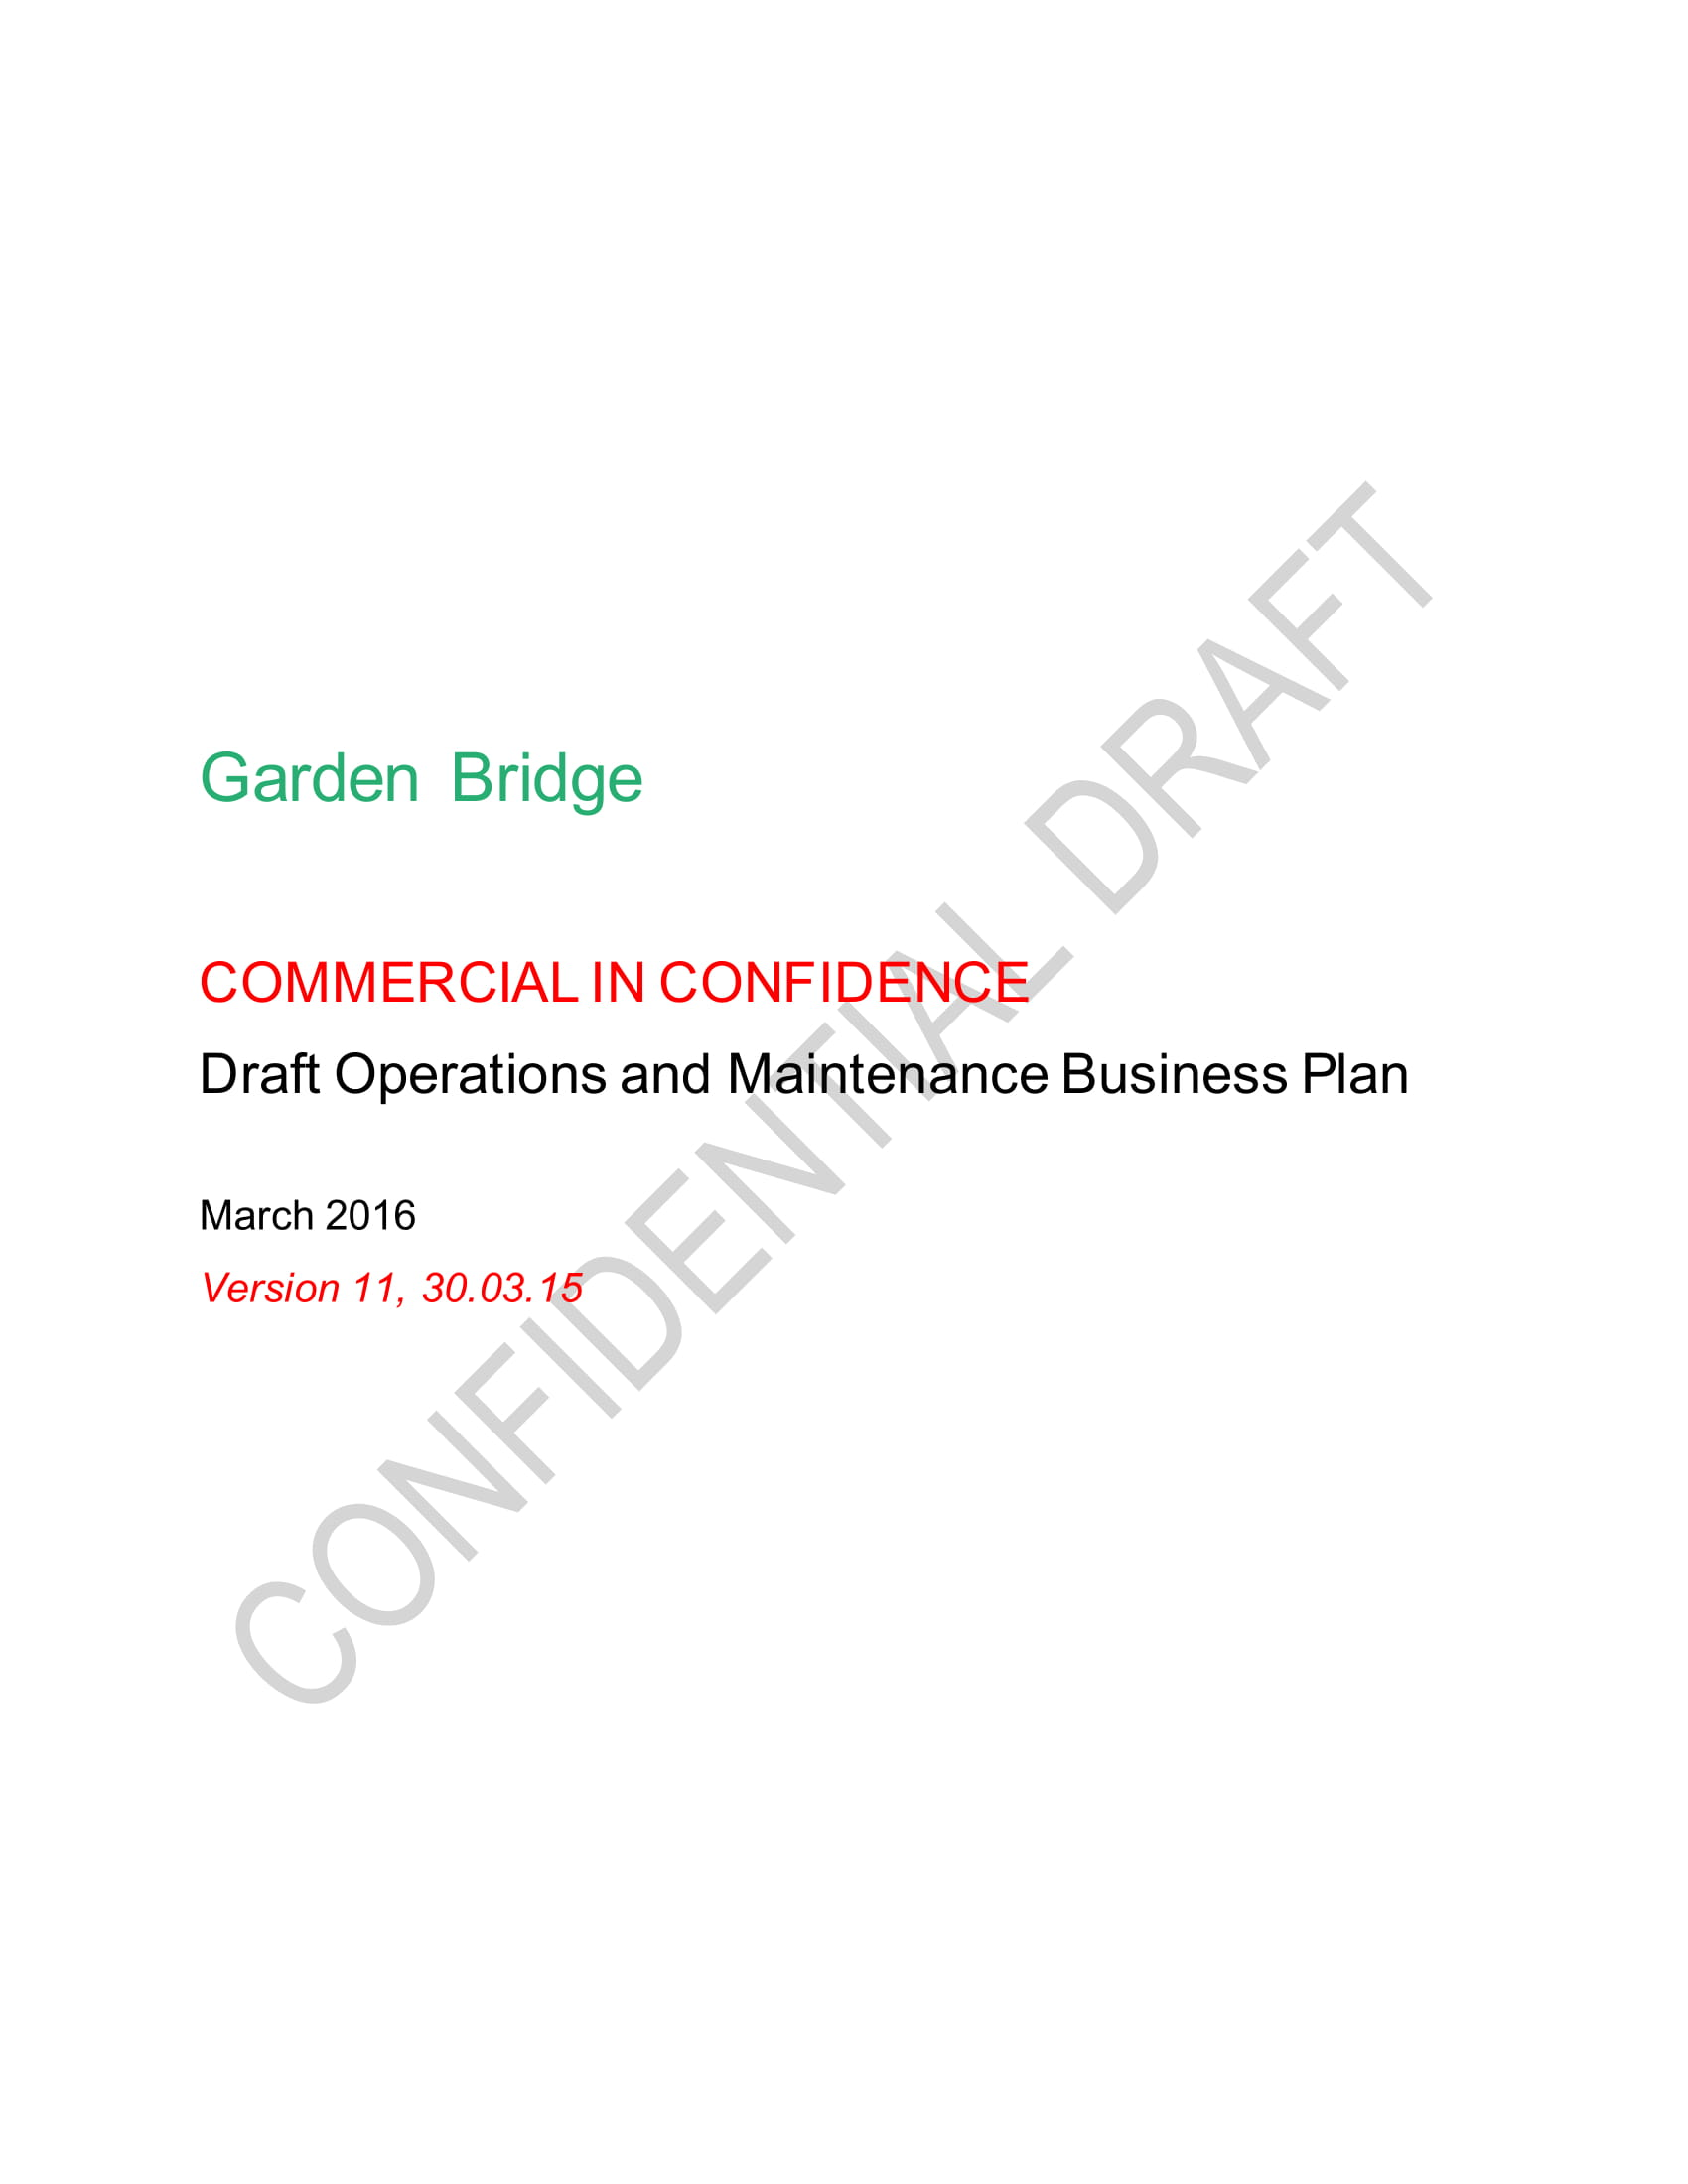 operations and maintenance business plan draft example 01